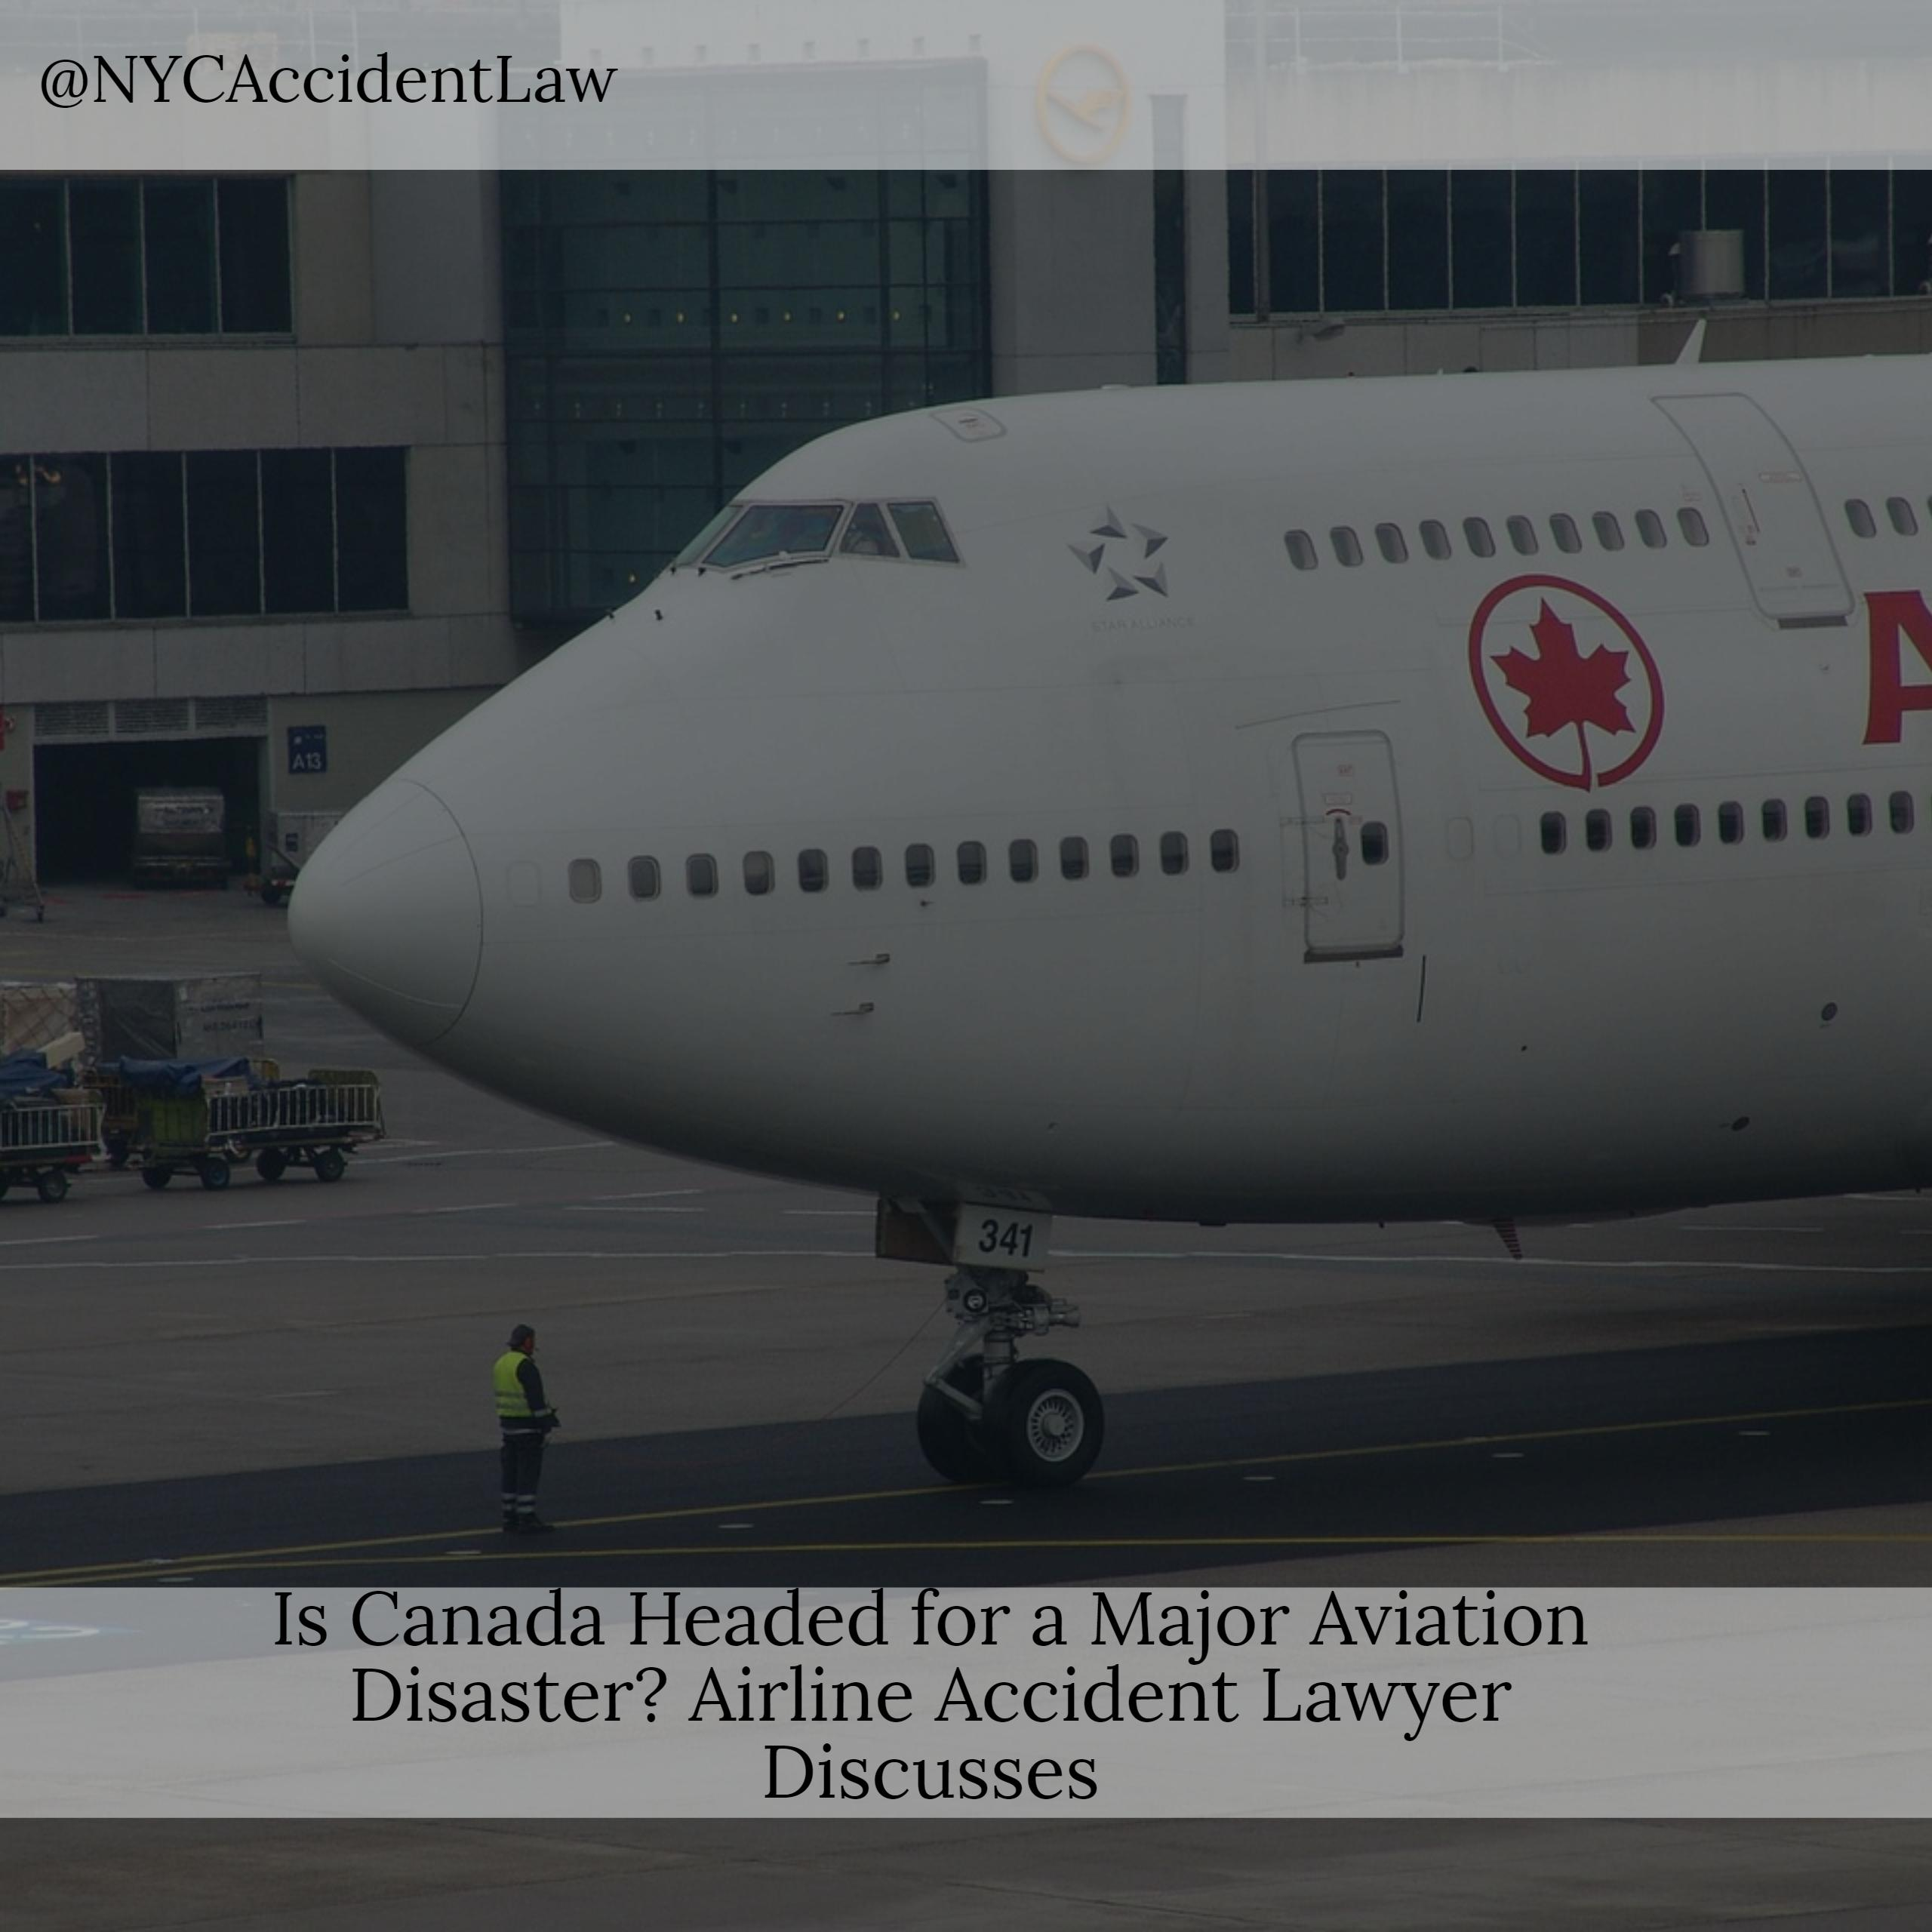 Is Canada Headed for a Major Aviation Disaster Airline Accident Lawyer Discusses